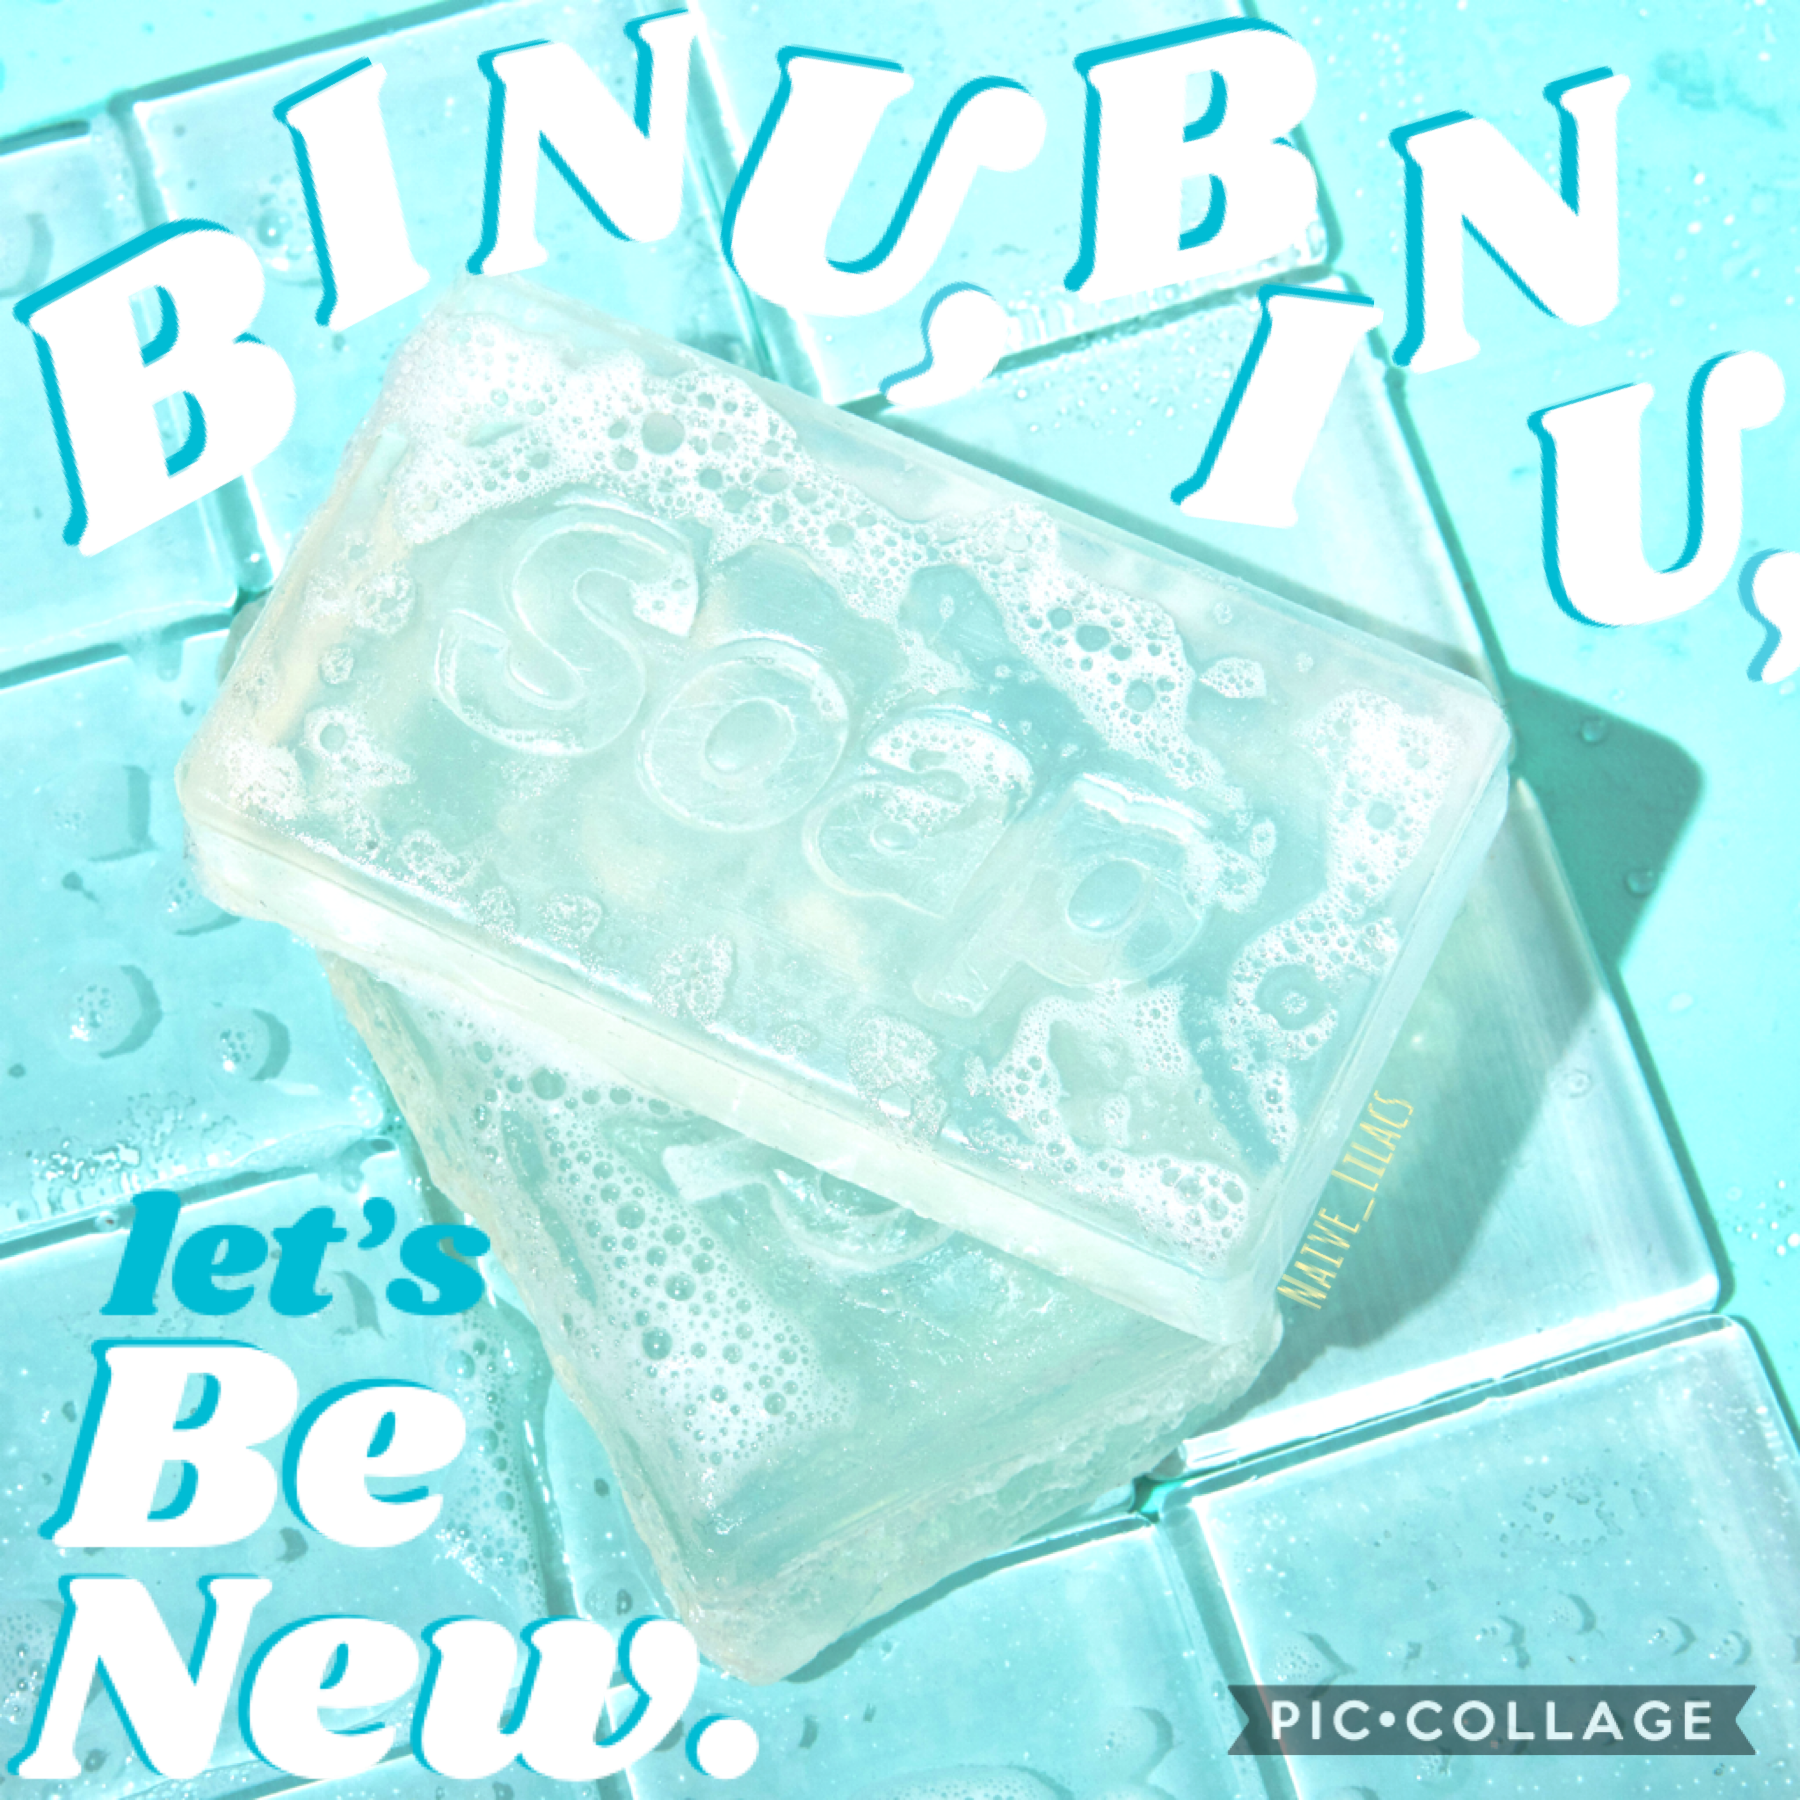 ~ BINU, by: BIBI🧼I'm quite proud of this. I'm sorry for not being here enough. I'm in college now, that's new. If you want, contact me on IG: nats_tired since I don't think I'll be here often in the future.